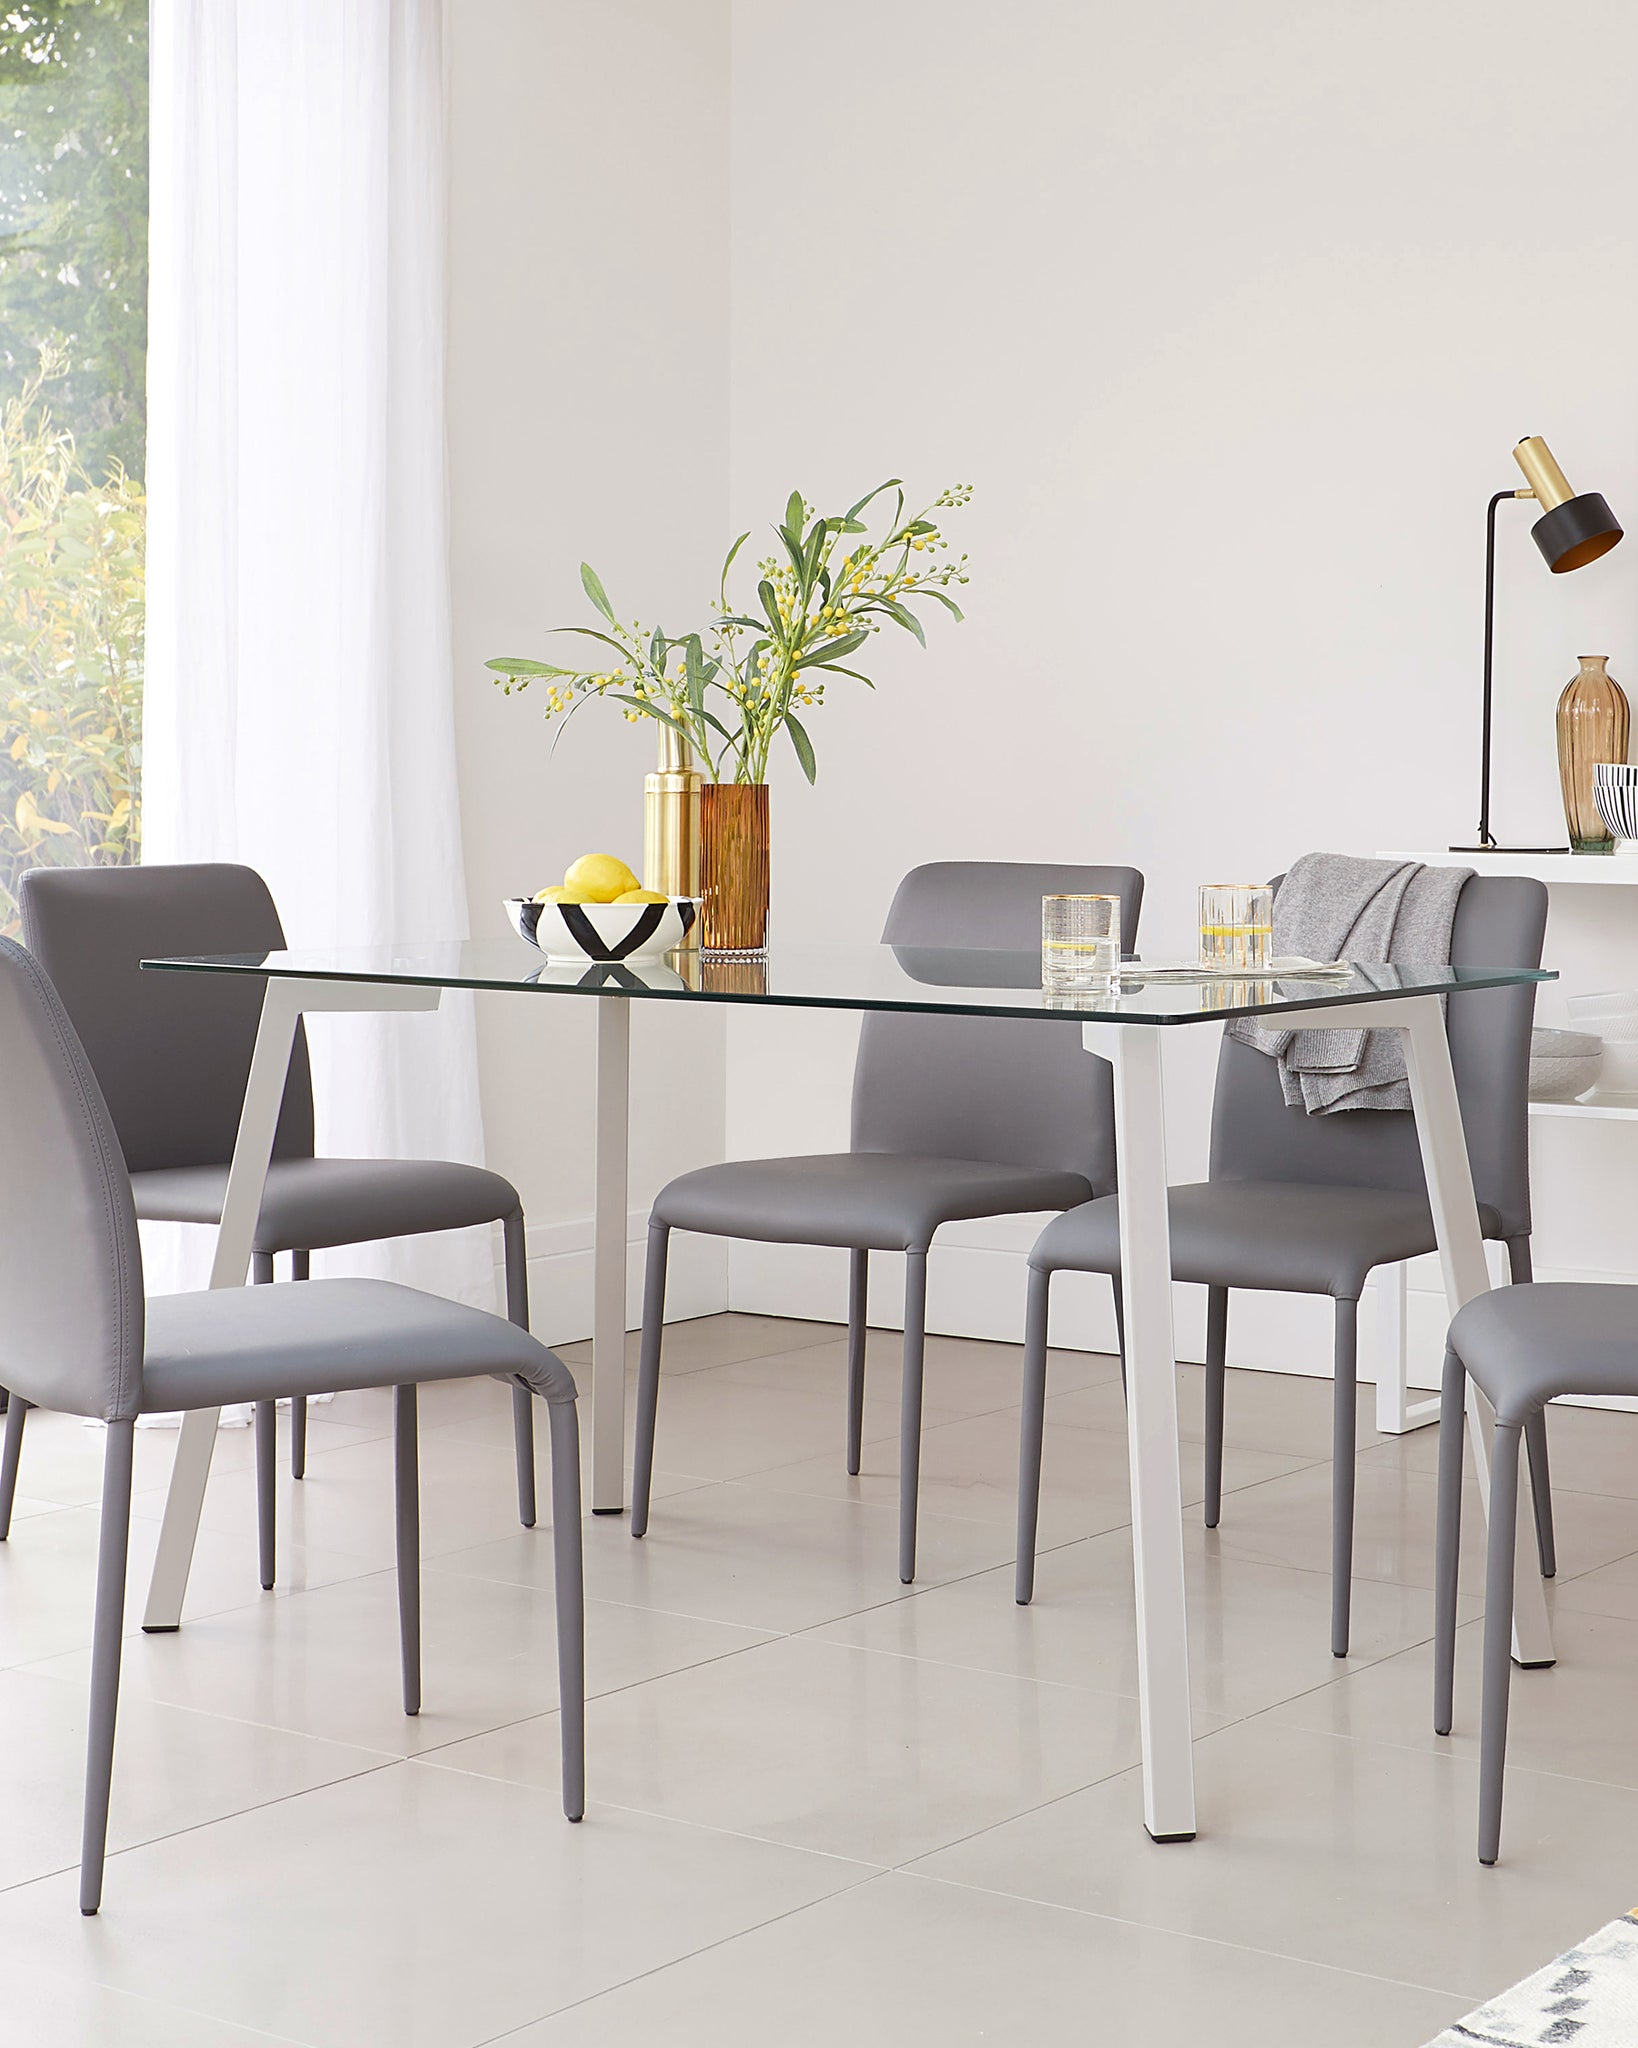 Picture of: Glass Dining Table 4 6 Seater Glass Dining Tables From Danetti